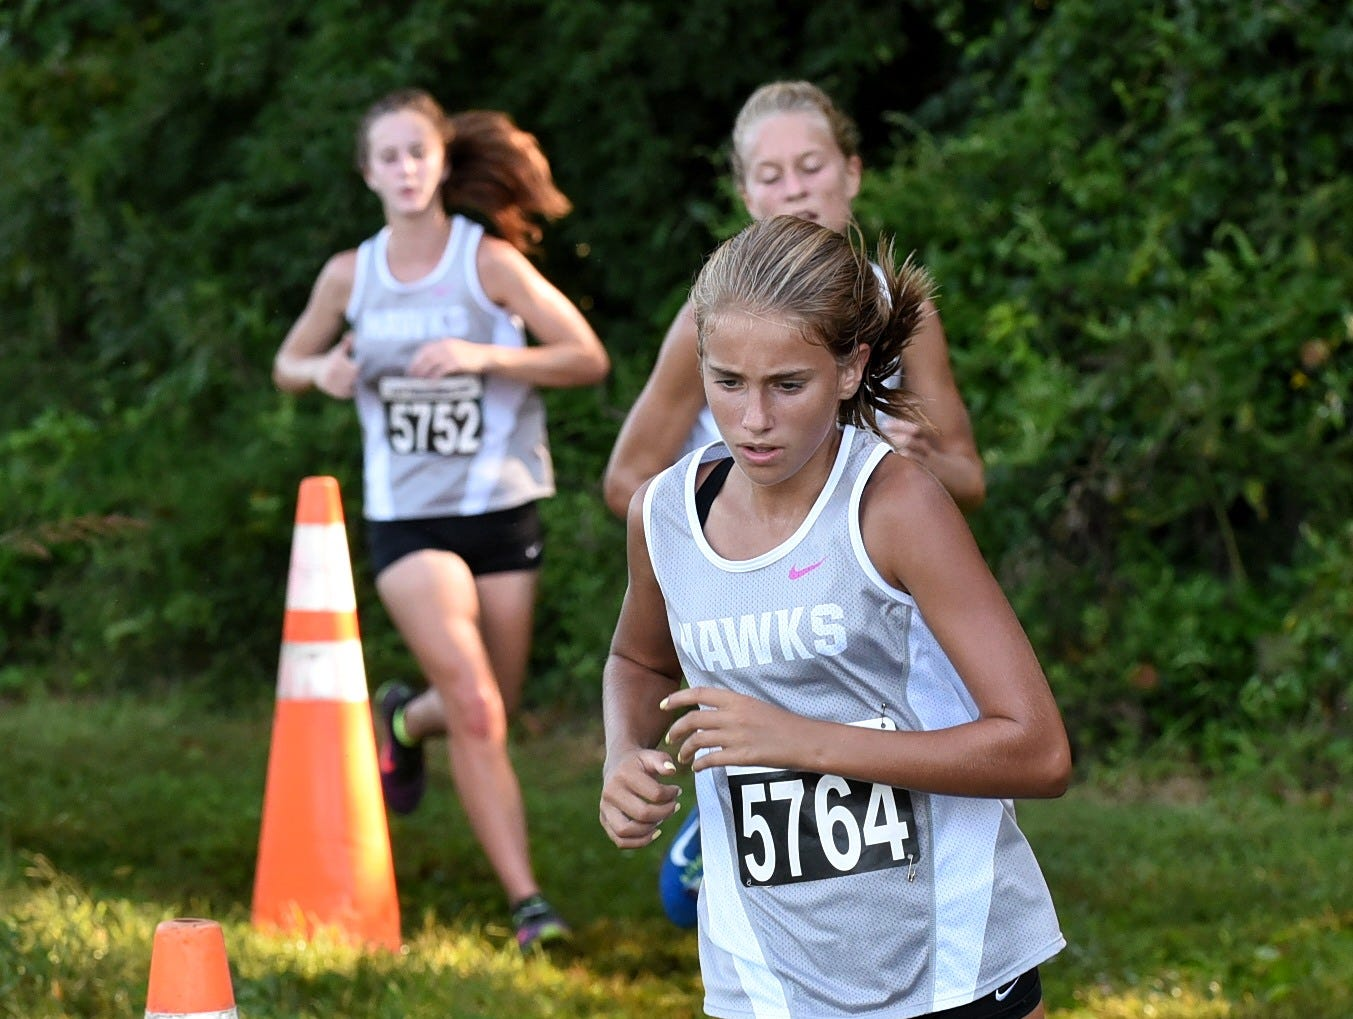 Cali Reynolds of Lakota East concentrates on the trail as she runs in the Varsity Girls 5K race at the 2018 Milford Cross Country Invitational, Sept. 15, 2018.